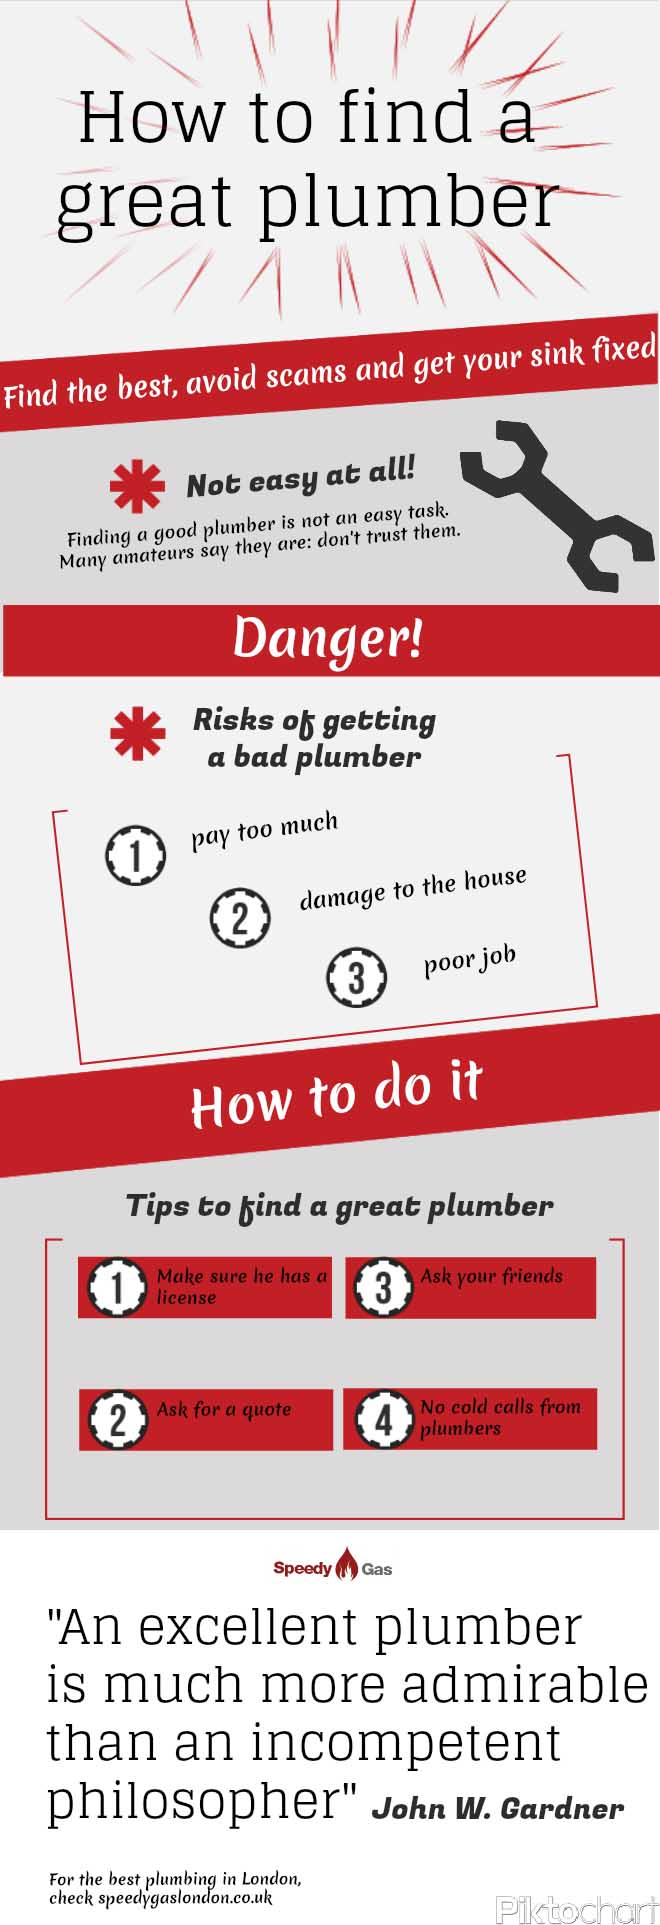 Tips to Find a Good Plumber